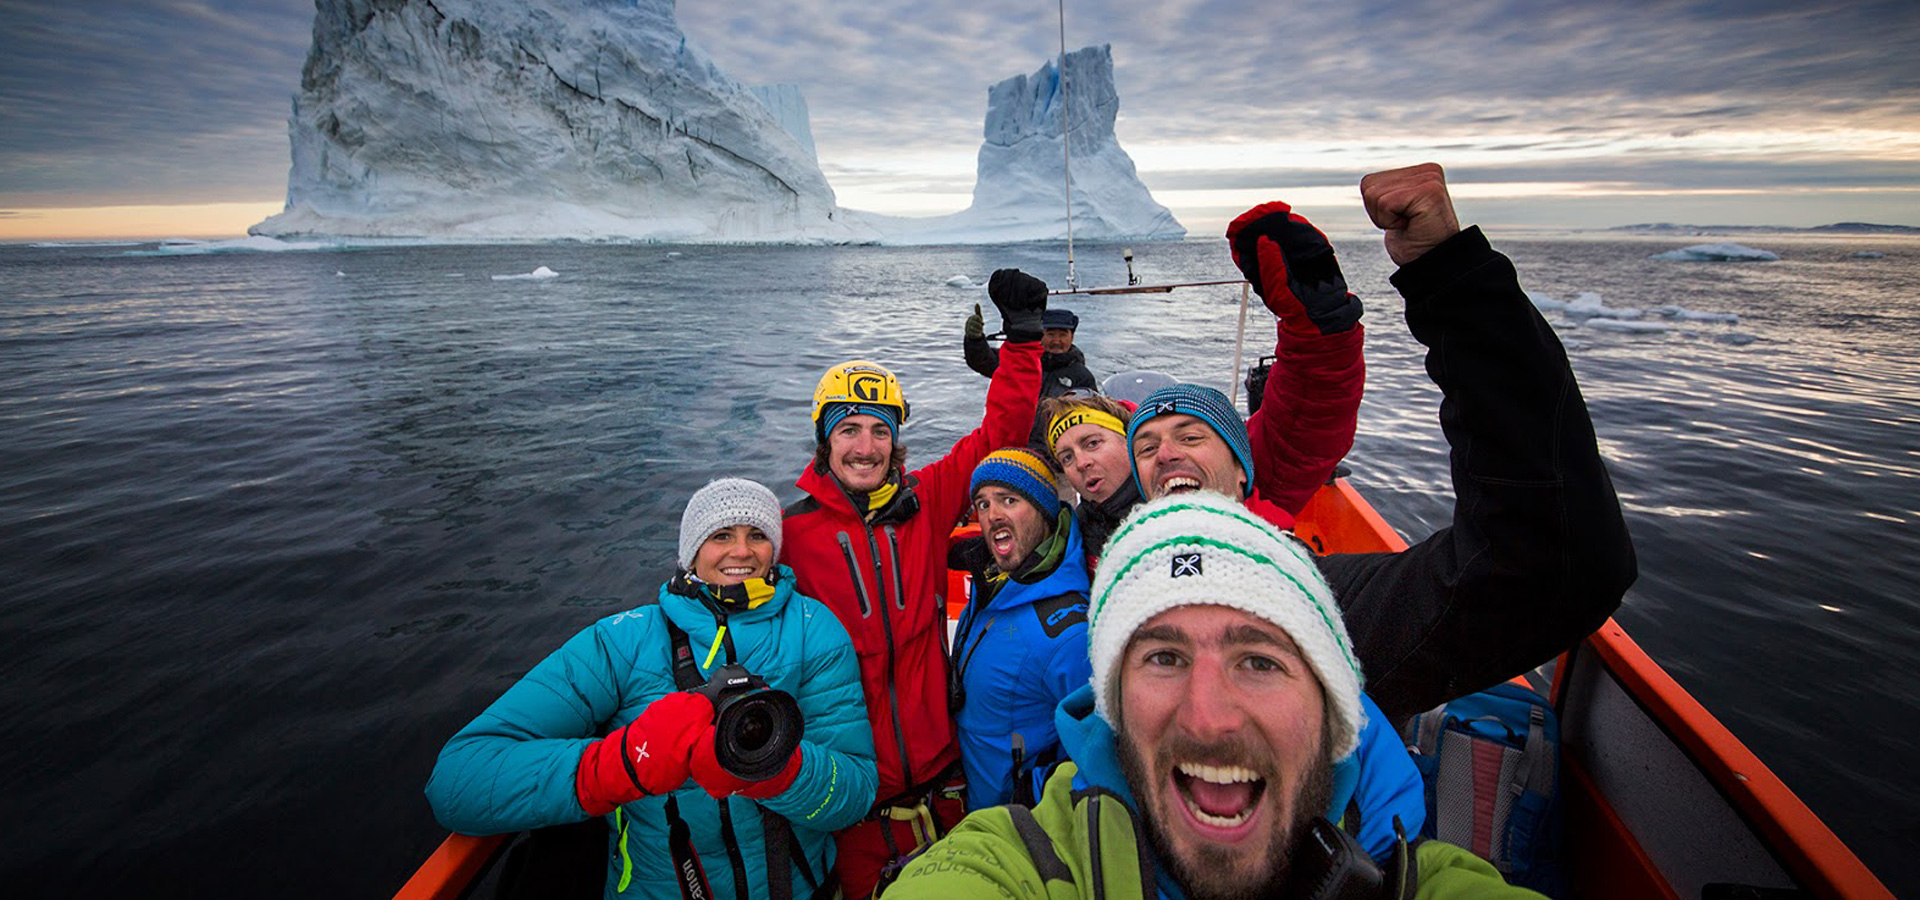 The Red House - Eastgreenland - Montura Iceberg Challenge